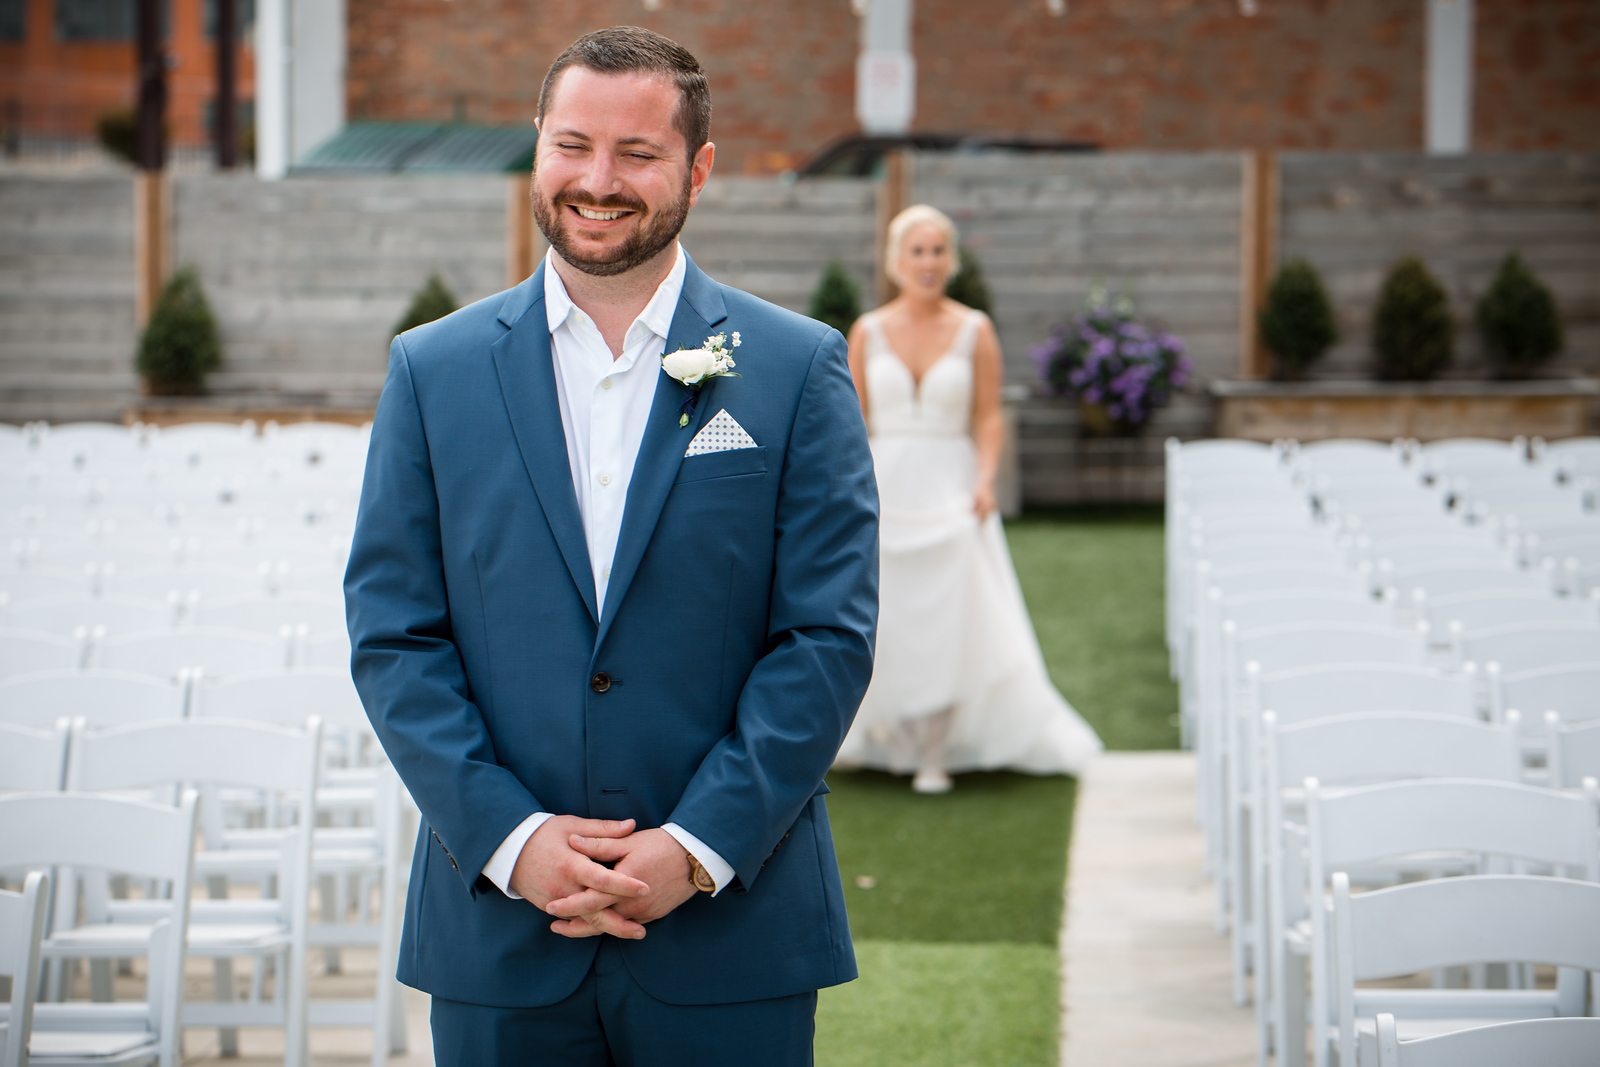 a groom standing at the altar as his bride walks up behind him for their first look